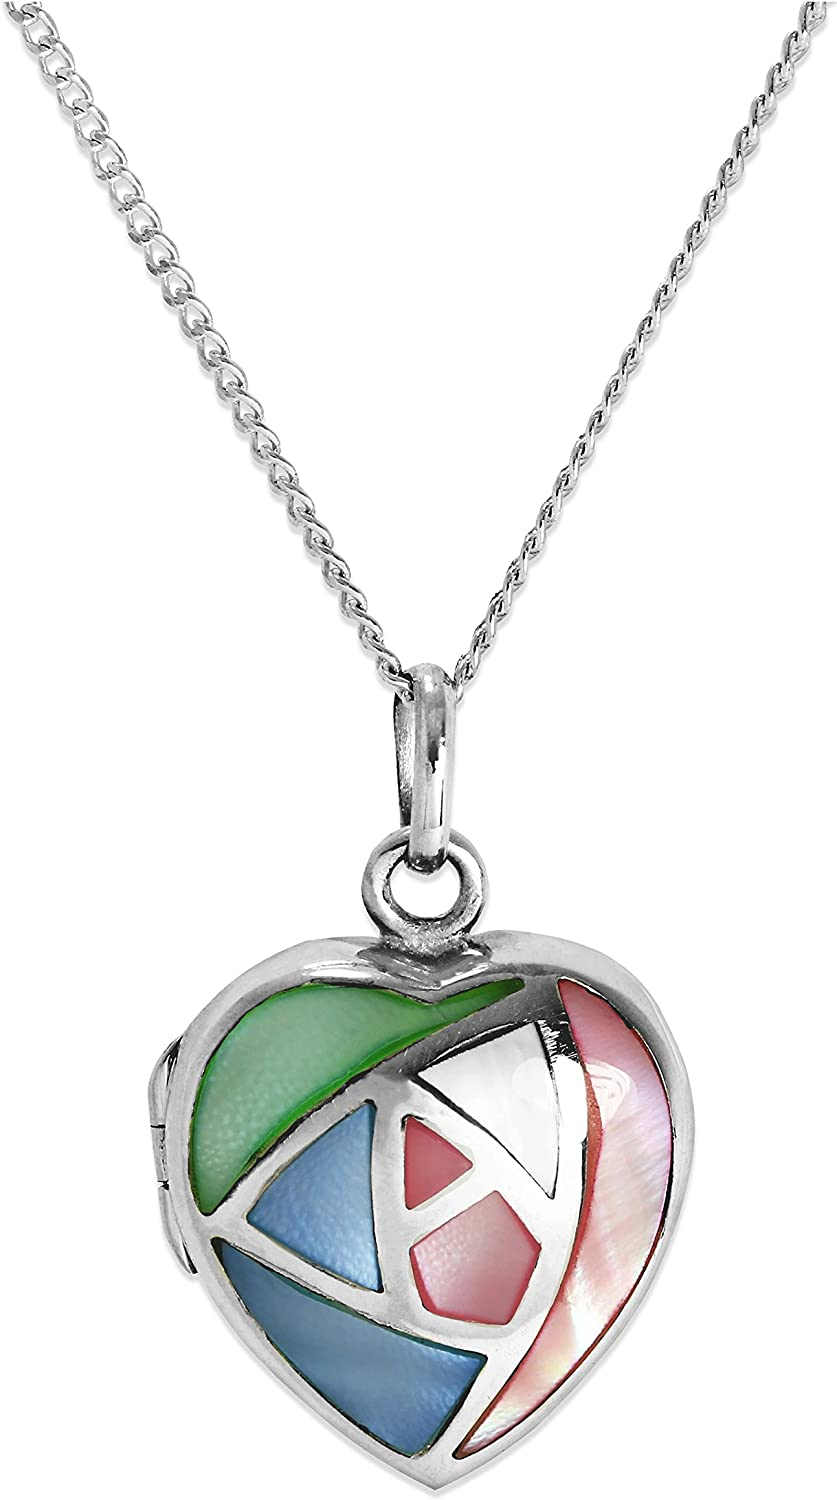 Sterling Silver /& Pastel Coloured Mother of Pearl Heart Locket on Chain 16-24 Inches